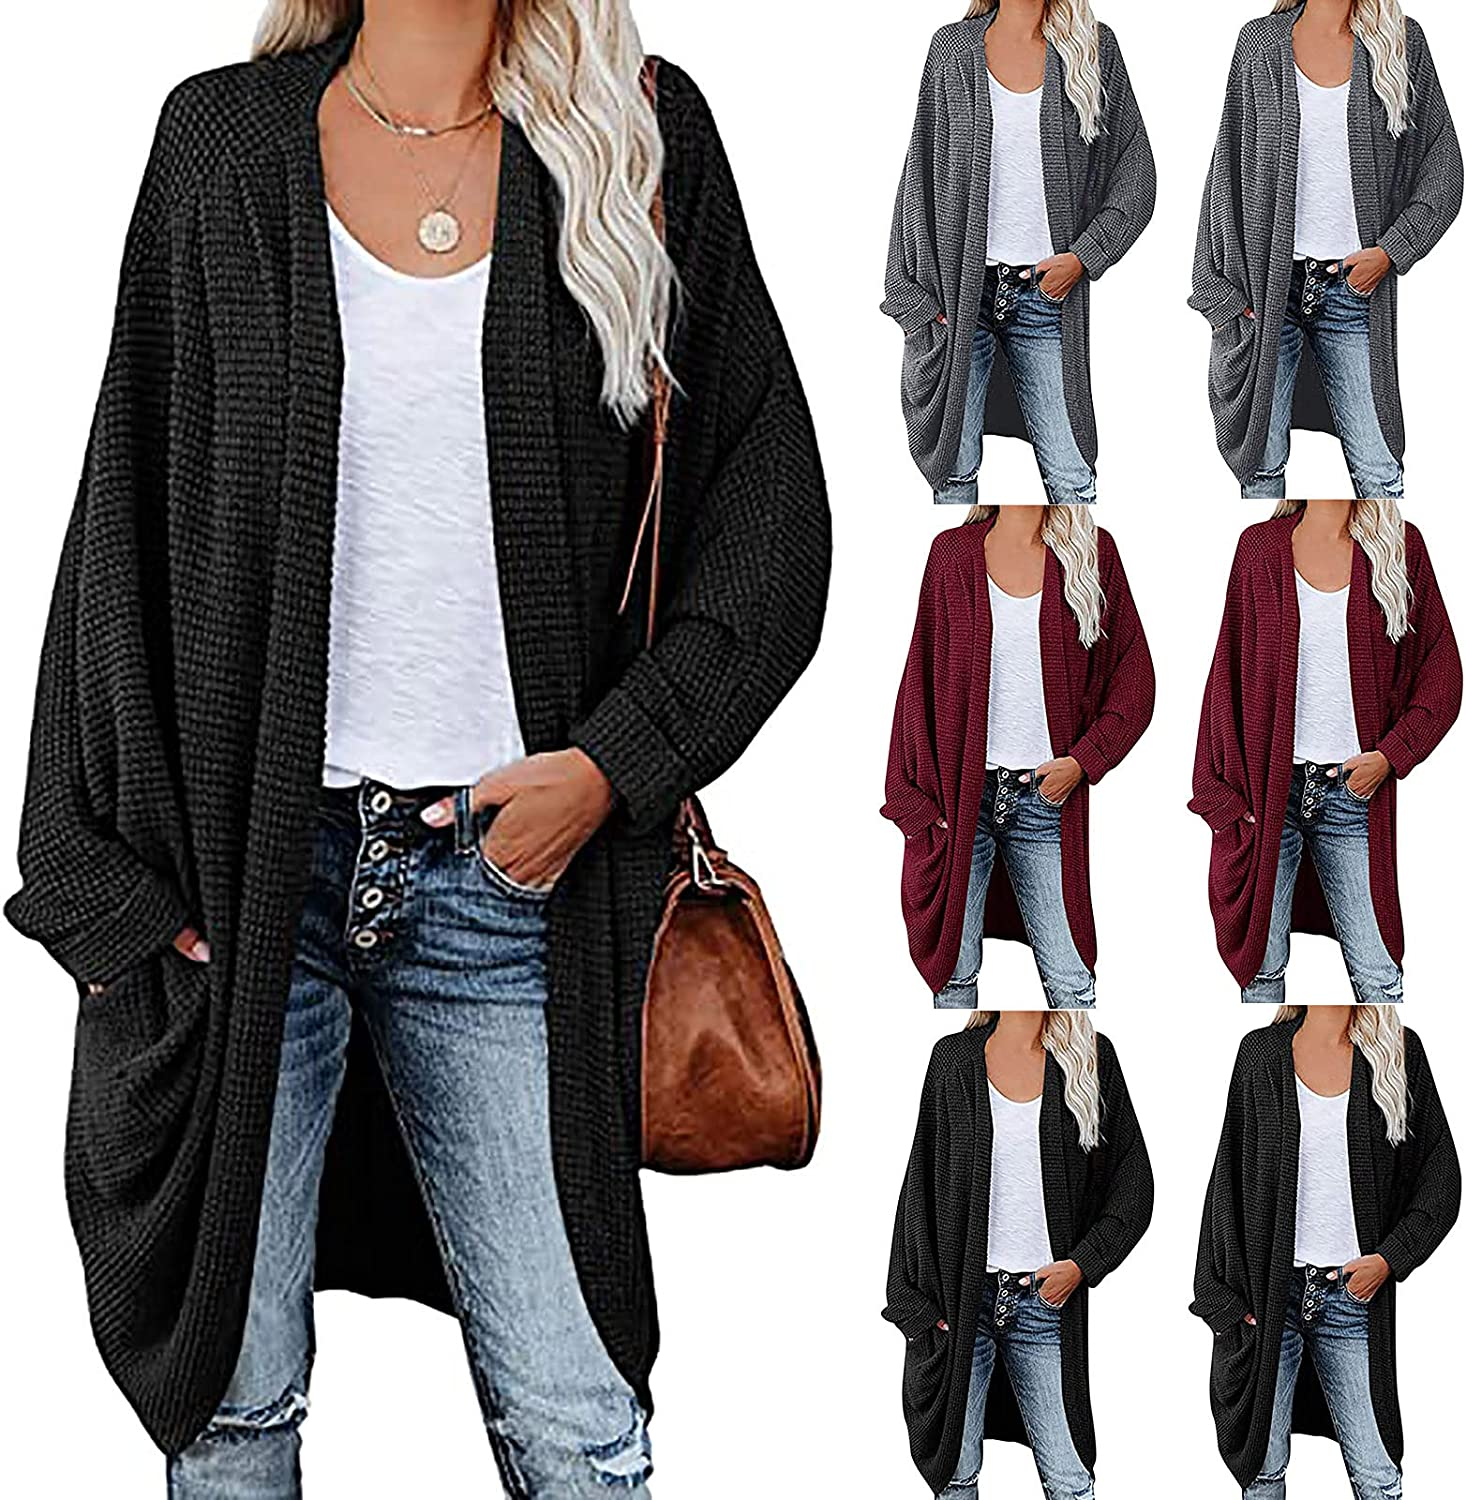 Women Casual Long Sleeve Stripe Tops Blo Patchwork specialty Max 54% OFF shop Cardigan